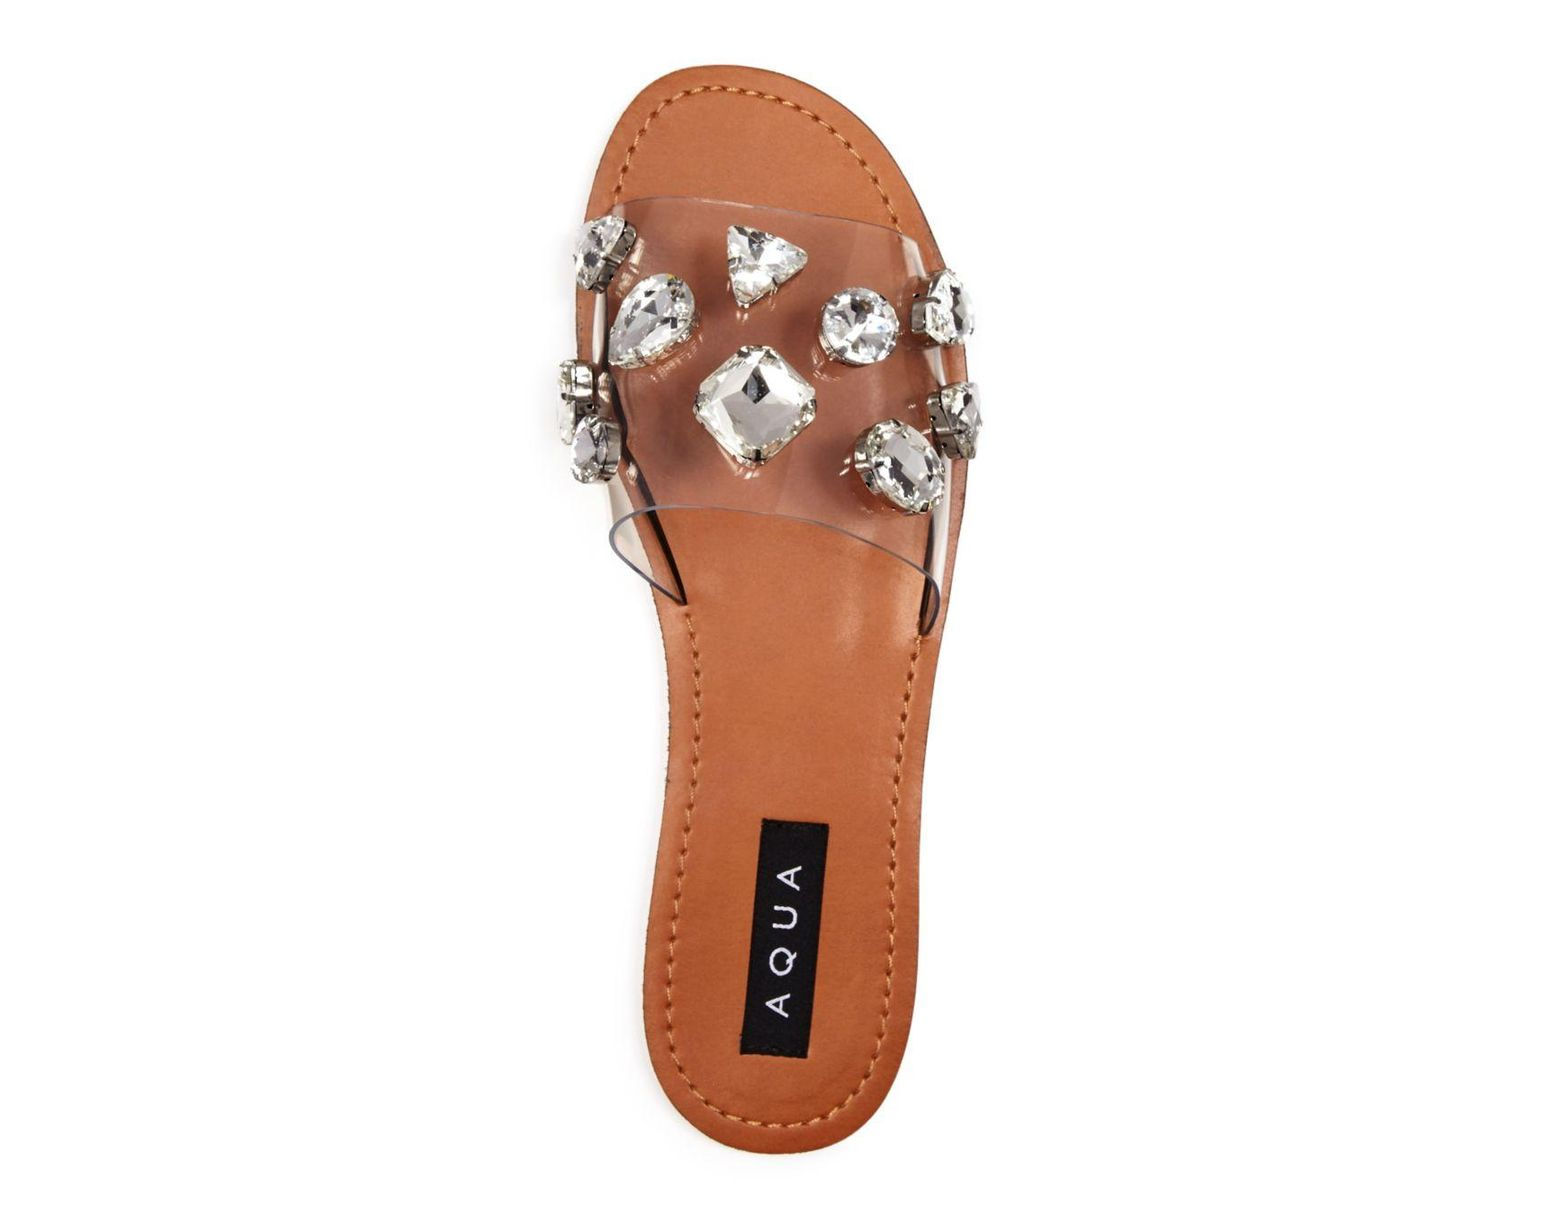 Embellished Clear Twink Crystal Slide Women's Sandals wN0vmnO8